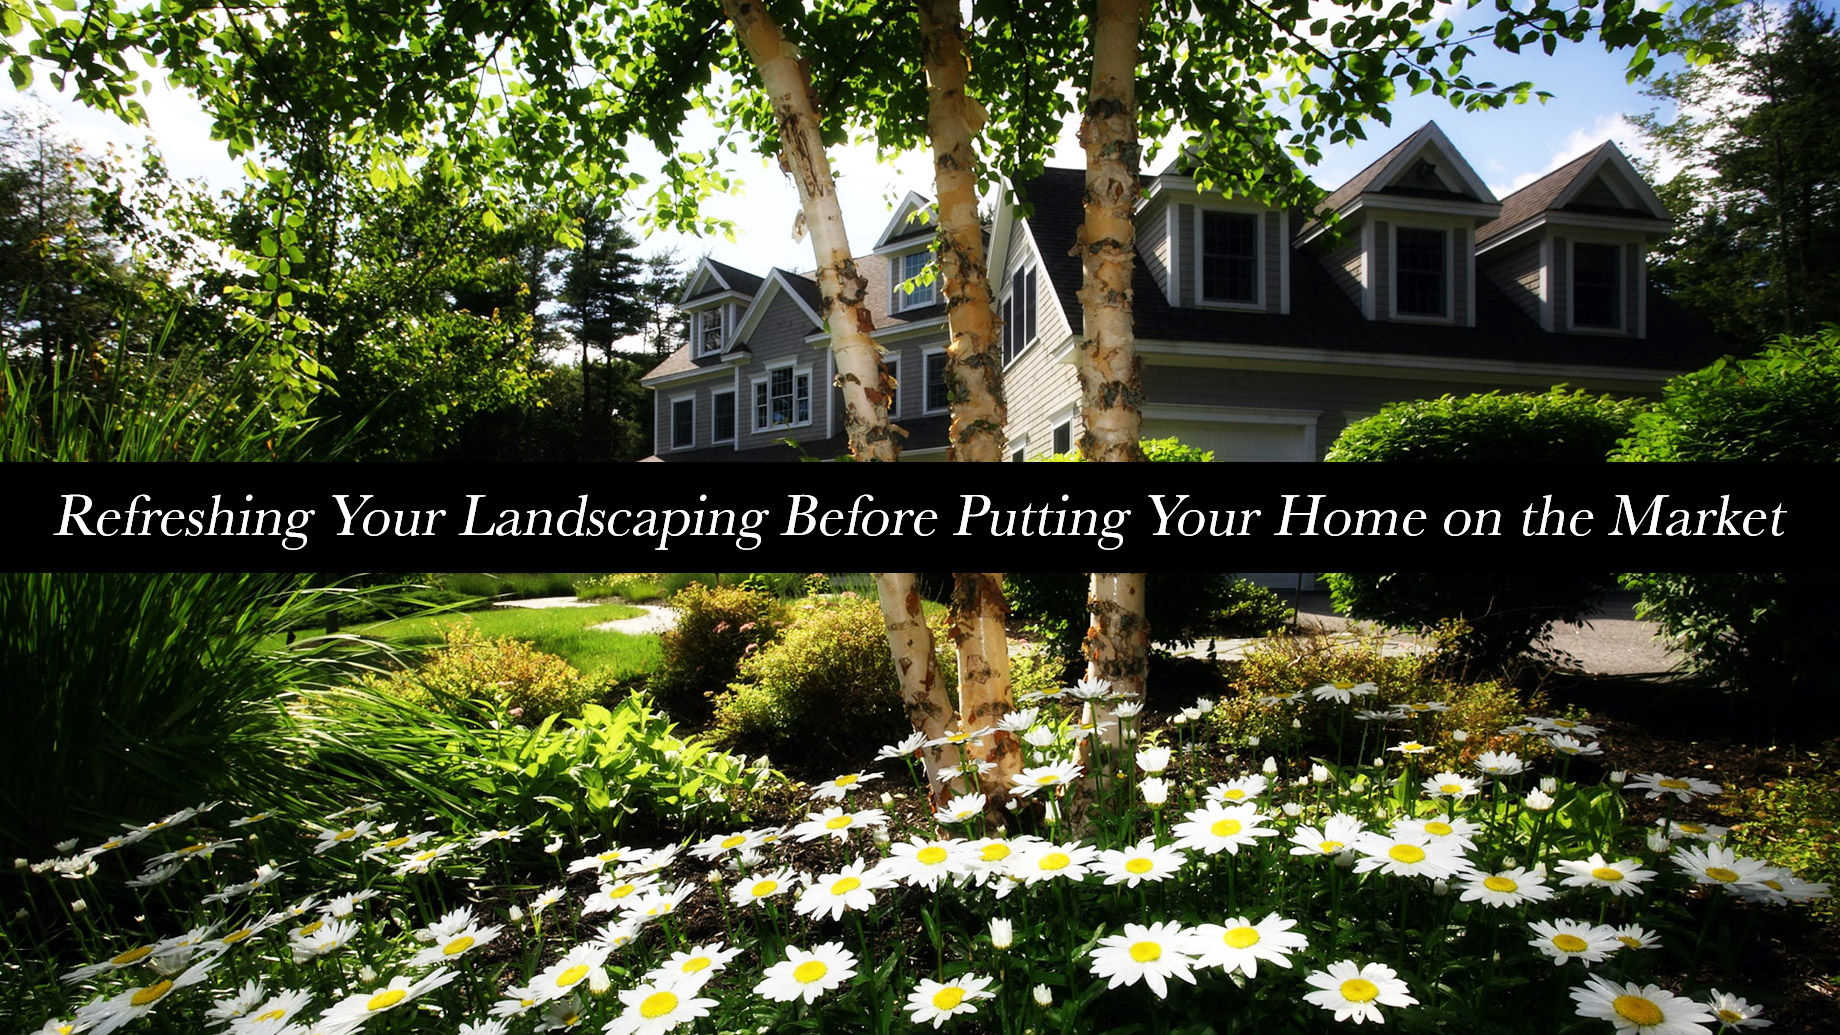 Refreshing Your Landscaping Before Putting Your Home on the Market